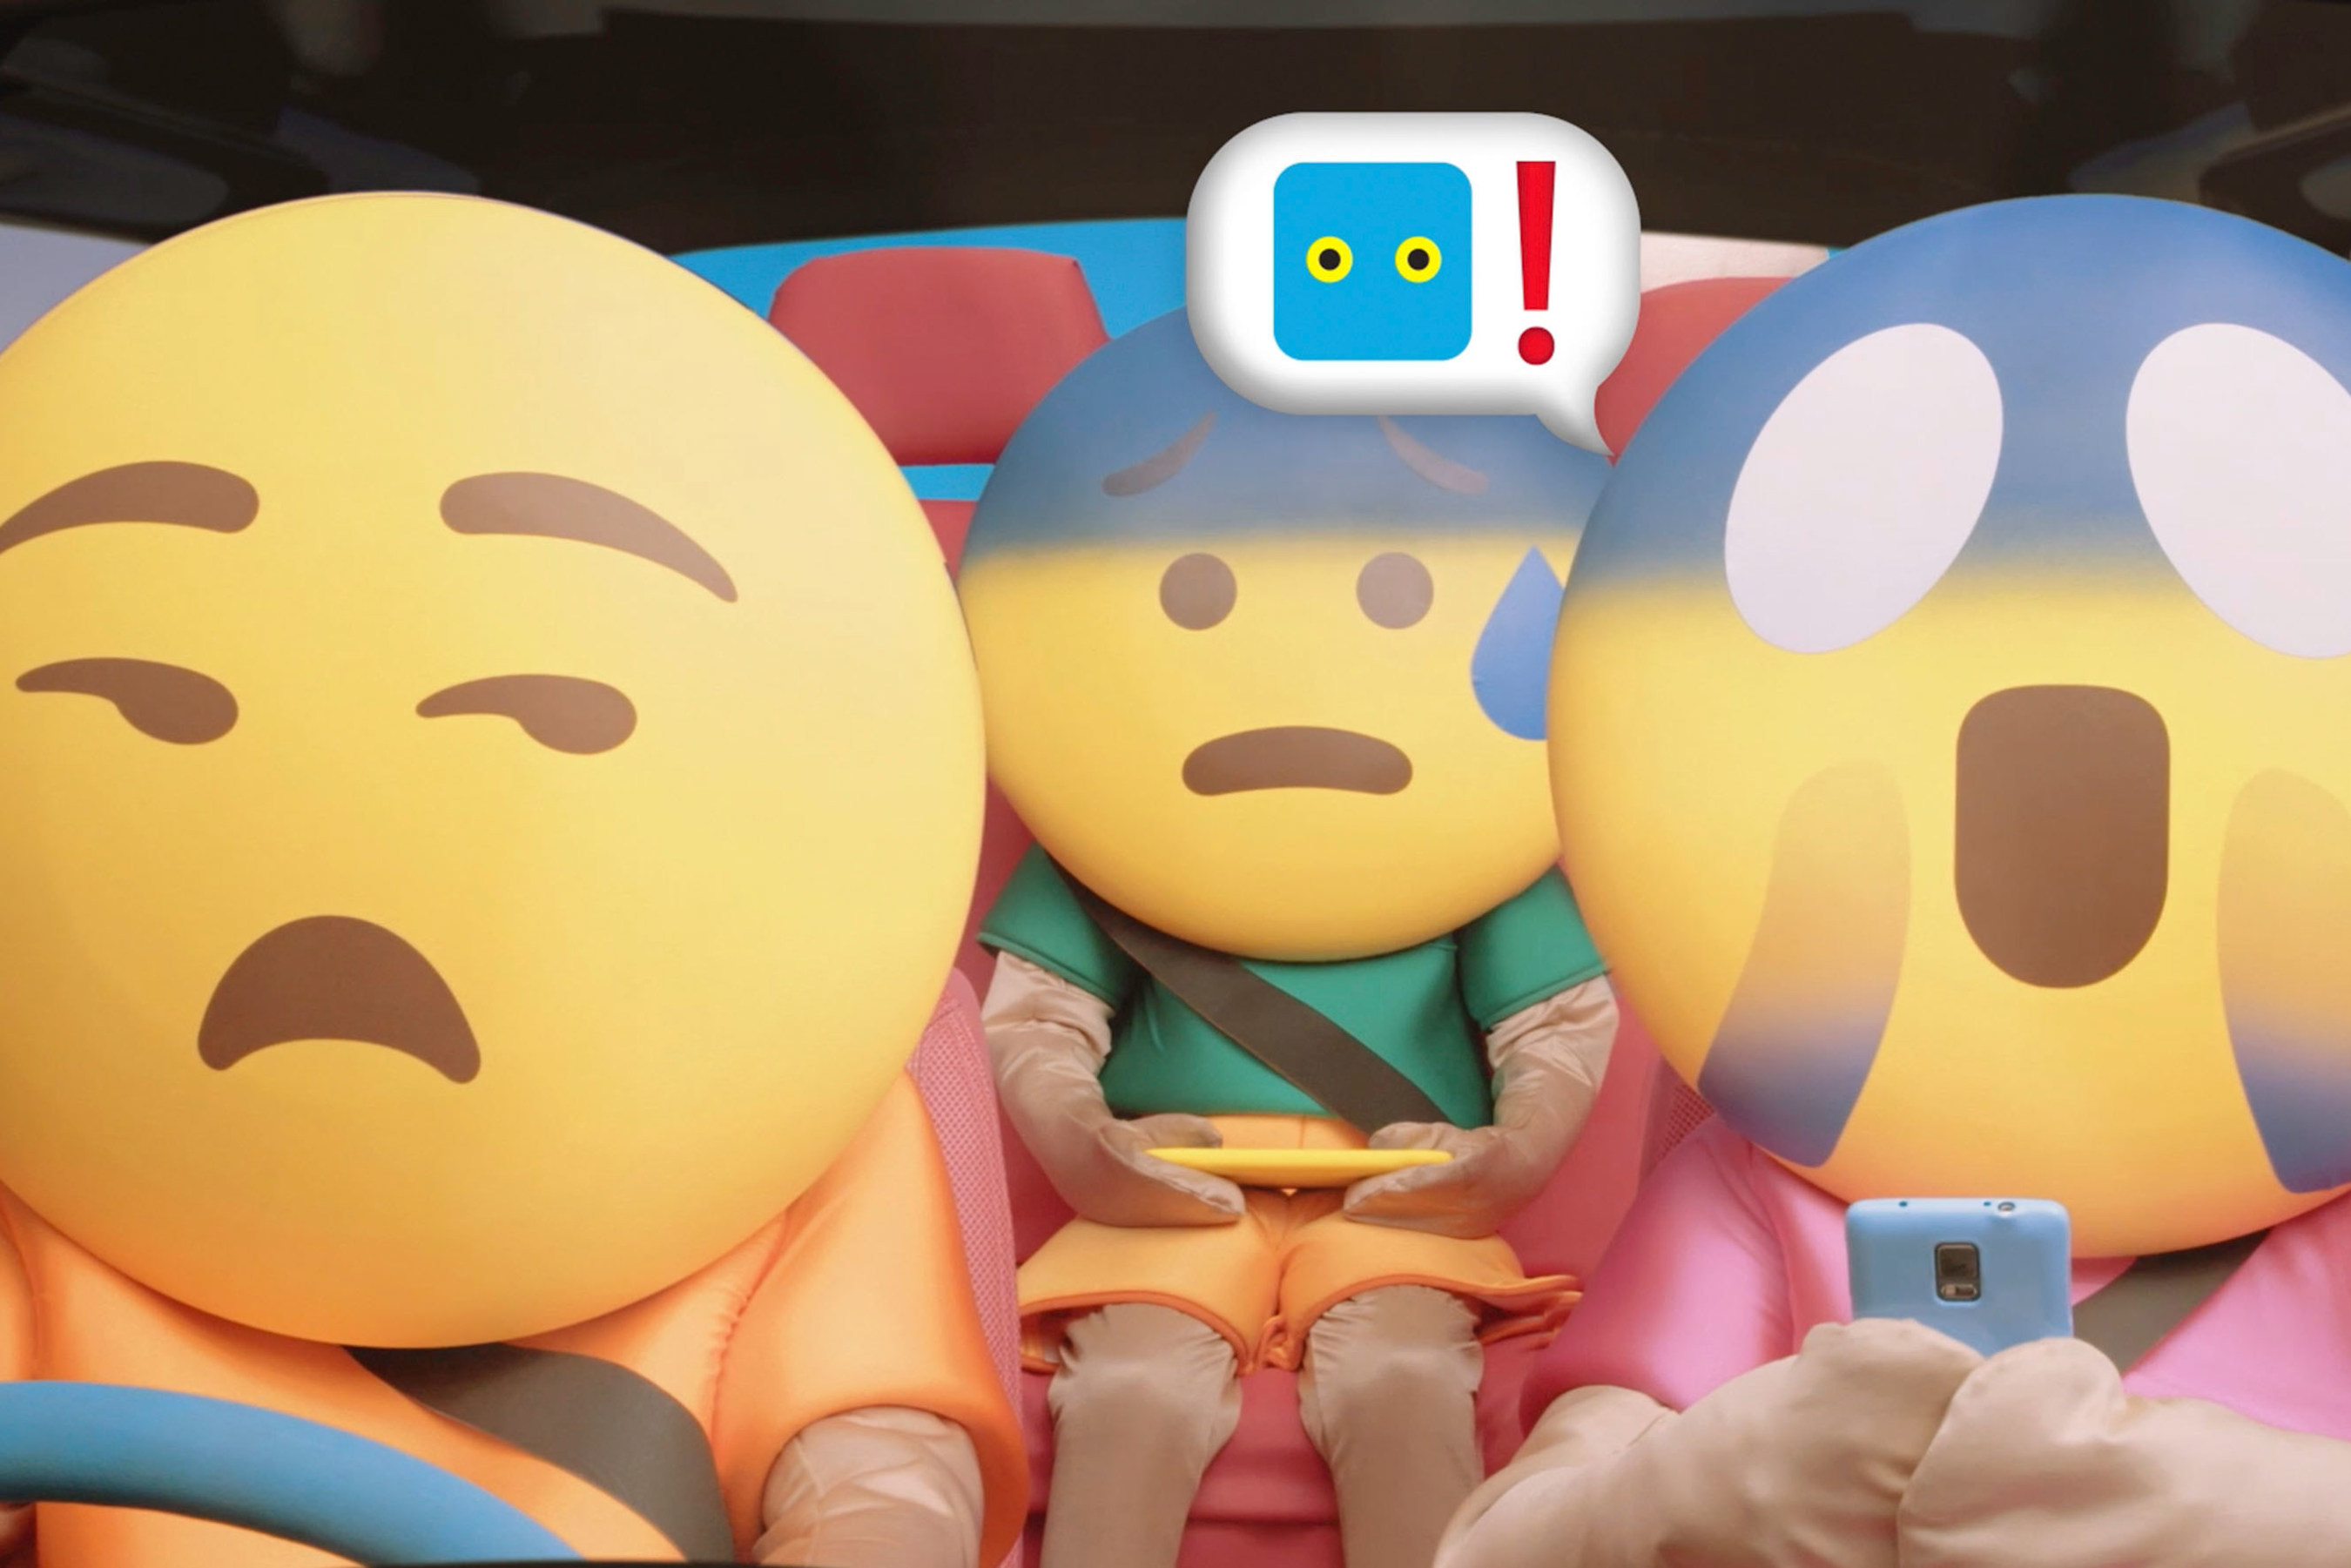 A family of Emoji in a life-size Emoji house shows how Spark's new Morepork smart home security takes care ...